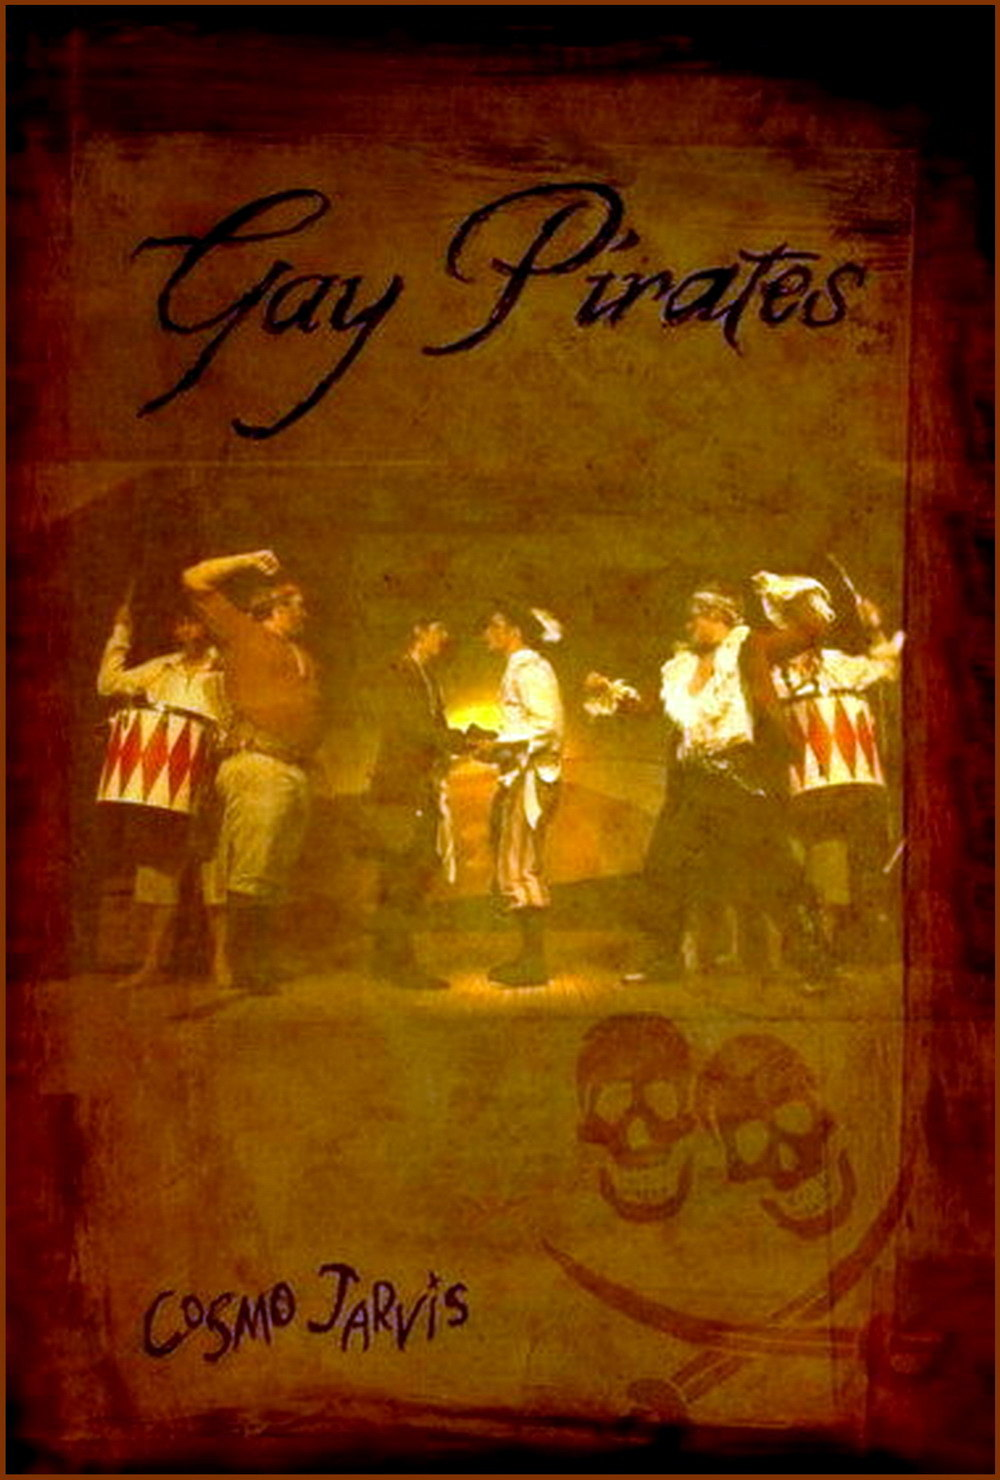 Gay Pirates (2011) Cosmo Jarvis